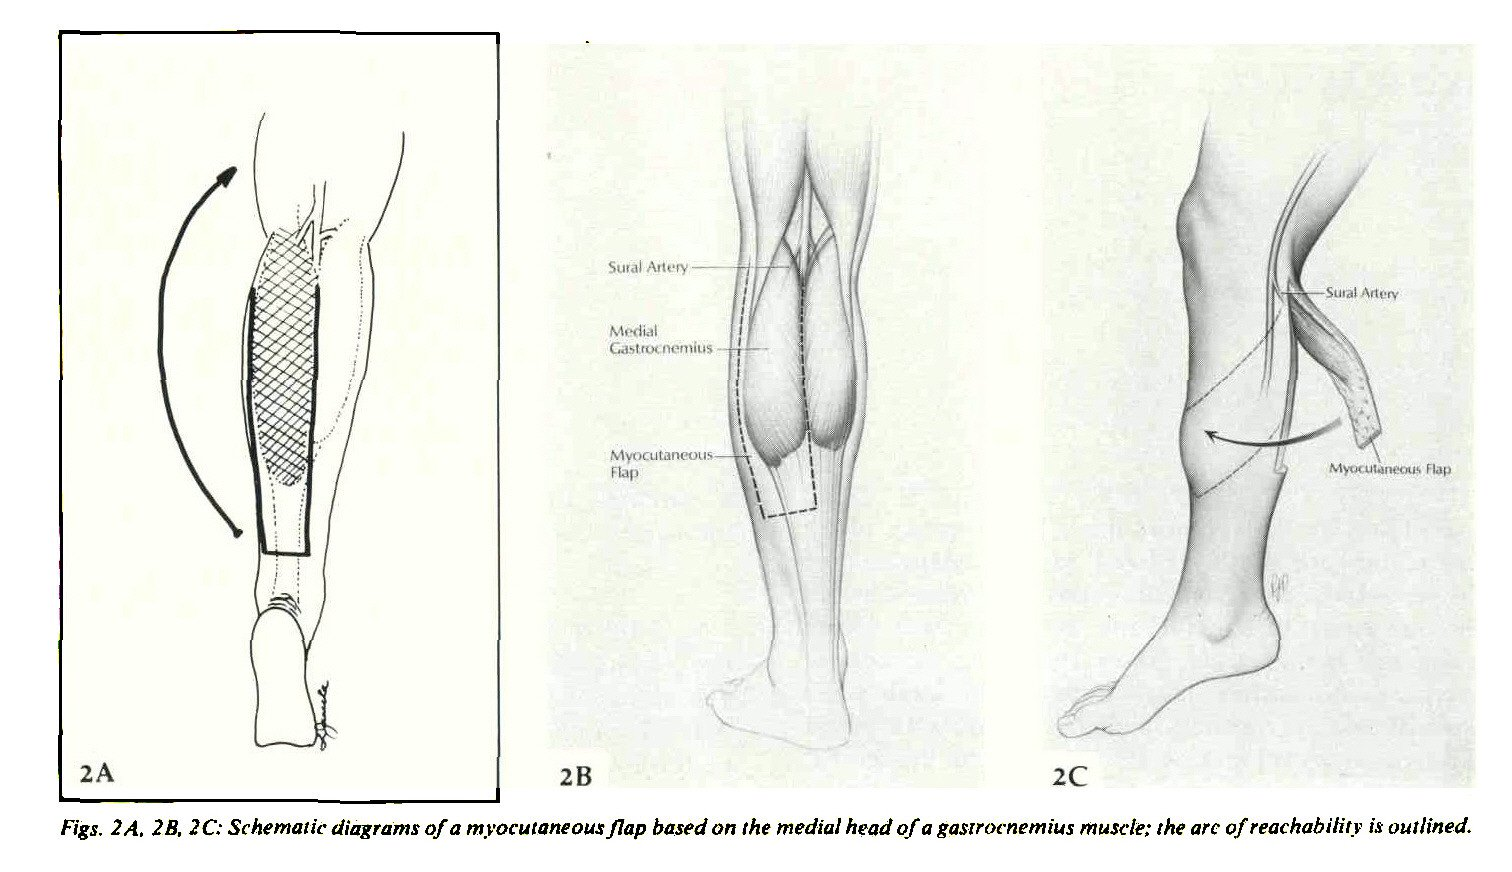 LOWER EXTREMITY RECONSTRUCTION USING MYOCUTANEOUS FLAPS